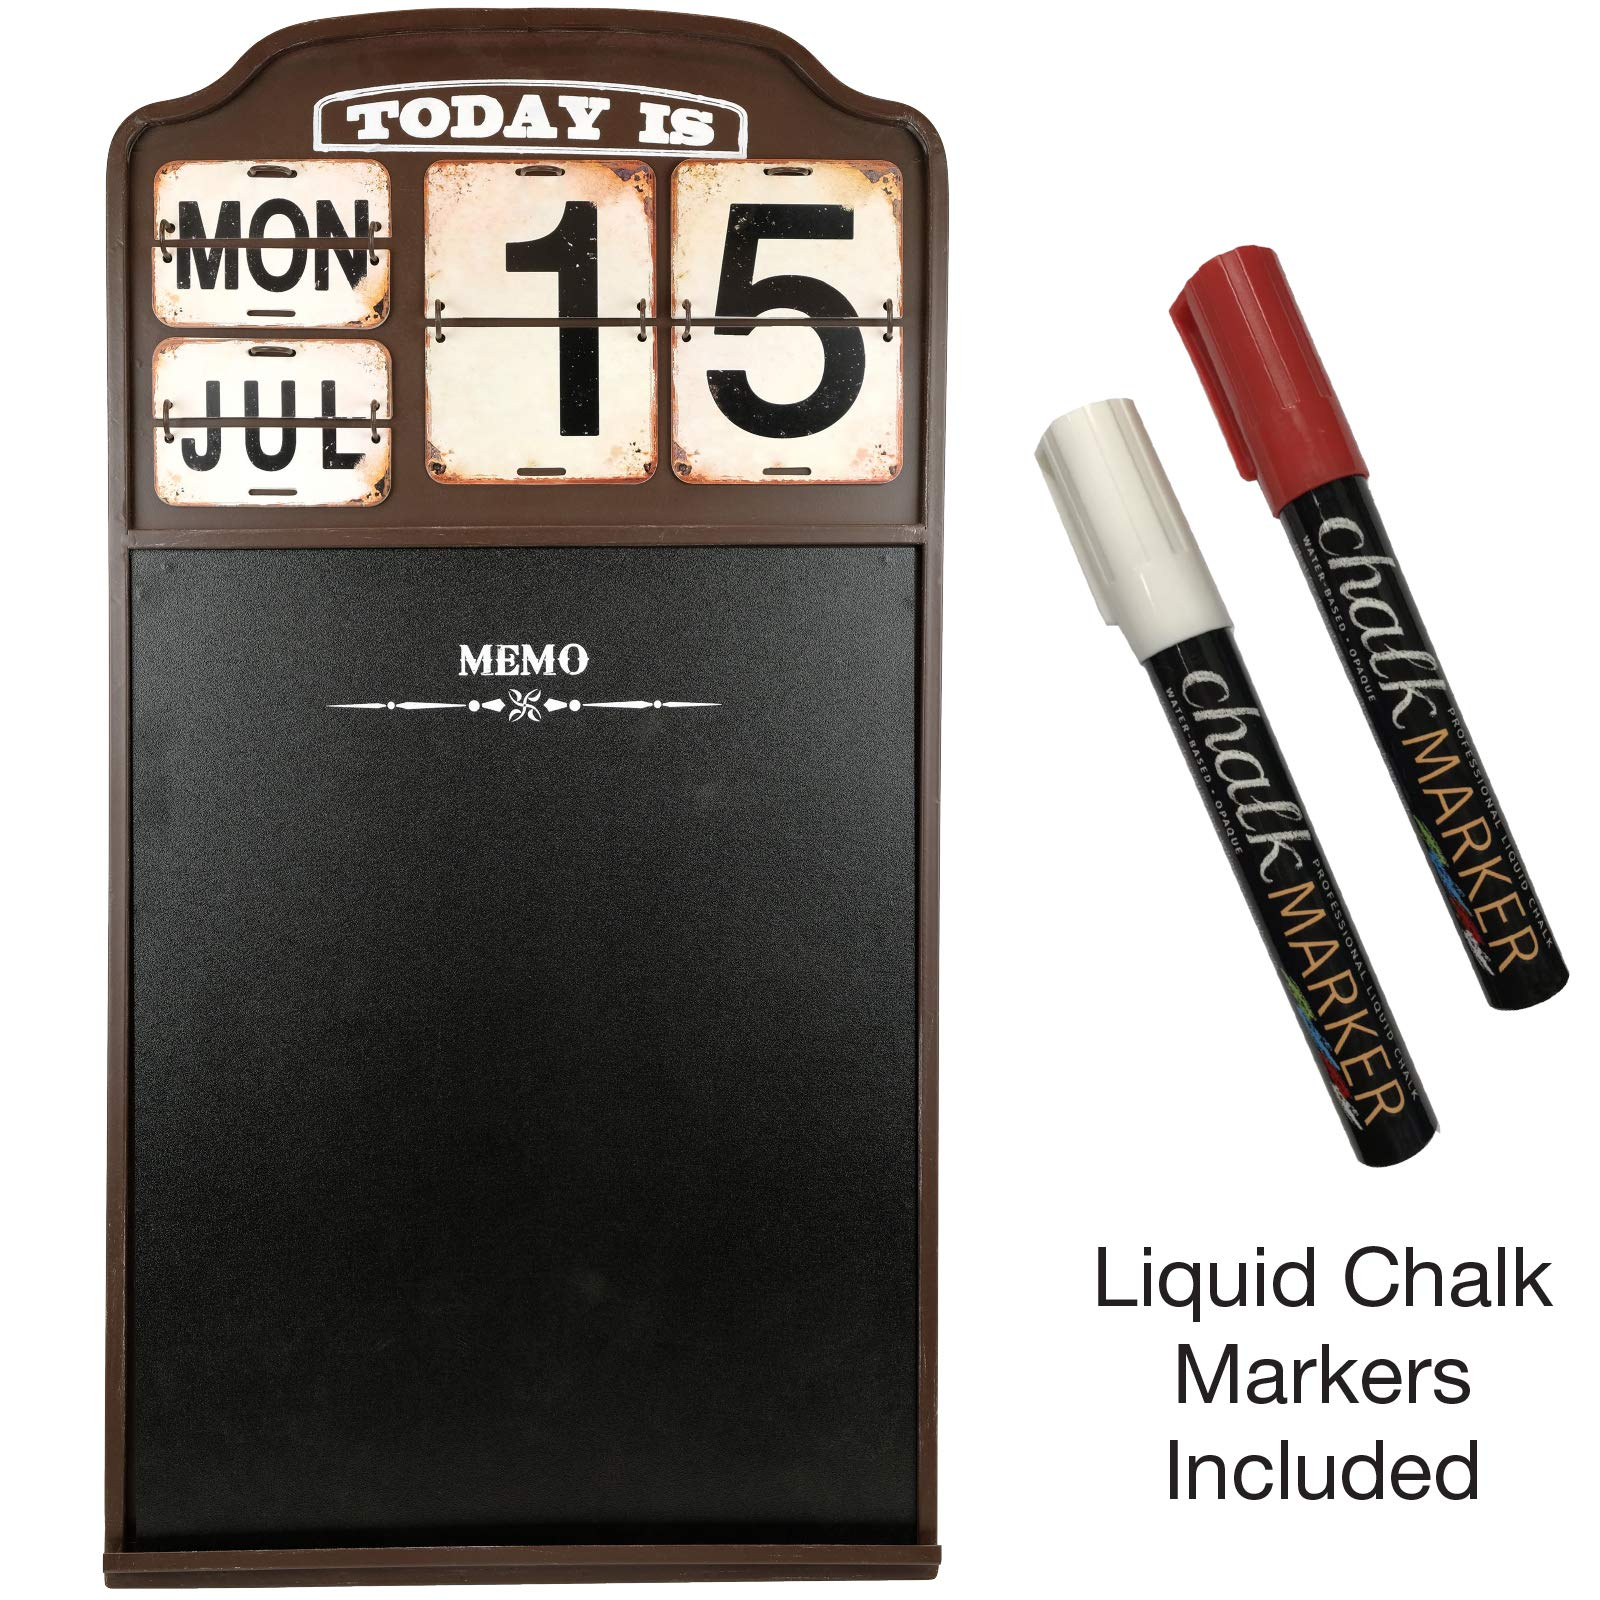 Iron Wall Mounted Sturdy Metal Hanging Chalkboard Sign with Vintage Flip Calendar Chalkboard and 2 Bonus Liquid Chalk Markers by Excello Global Products